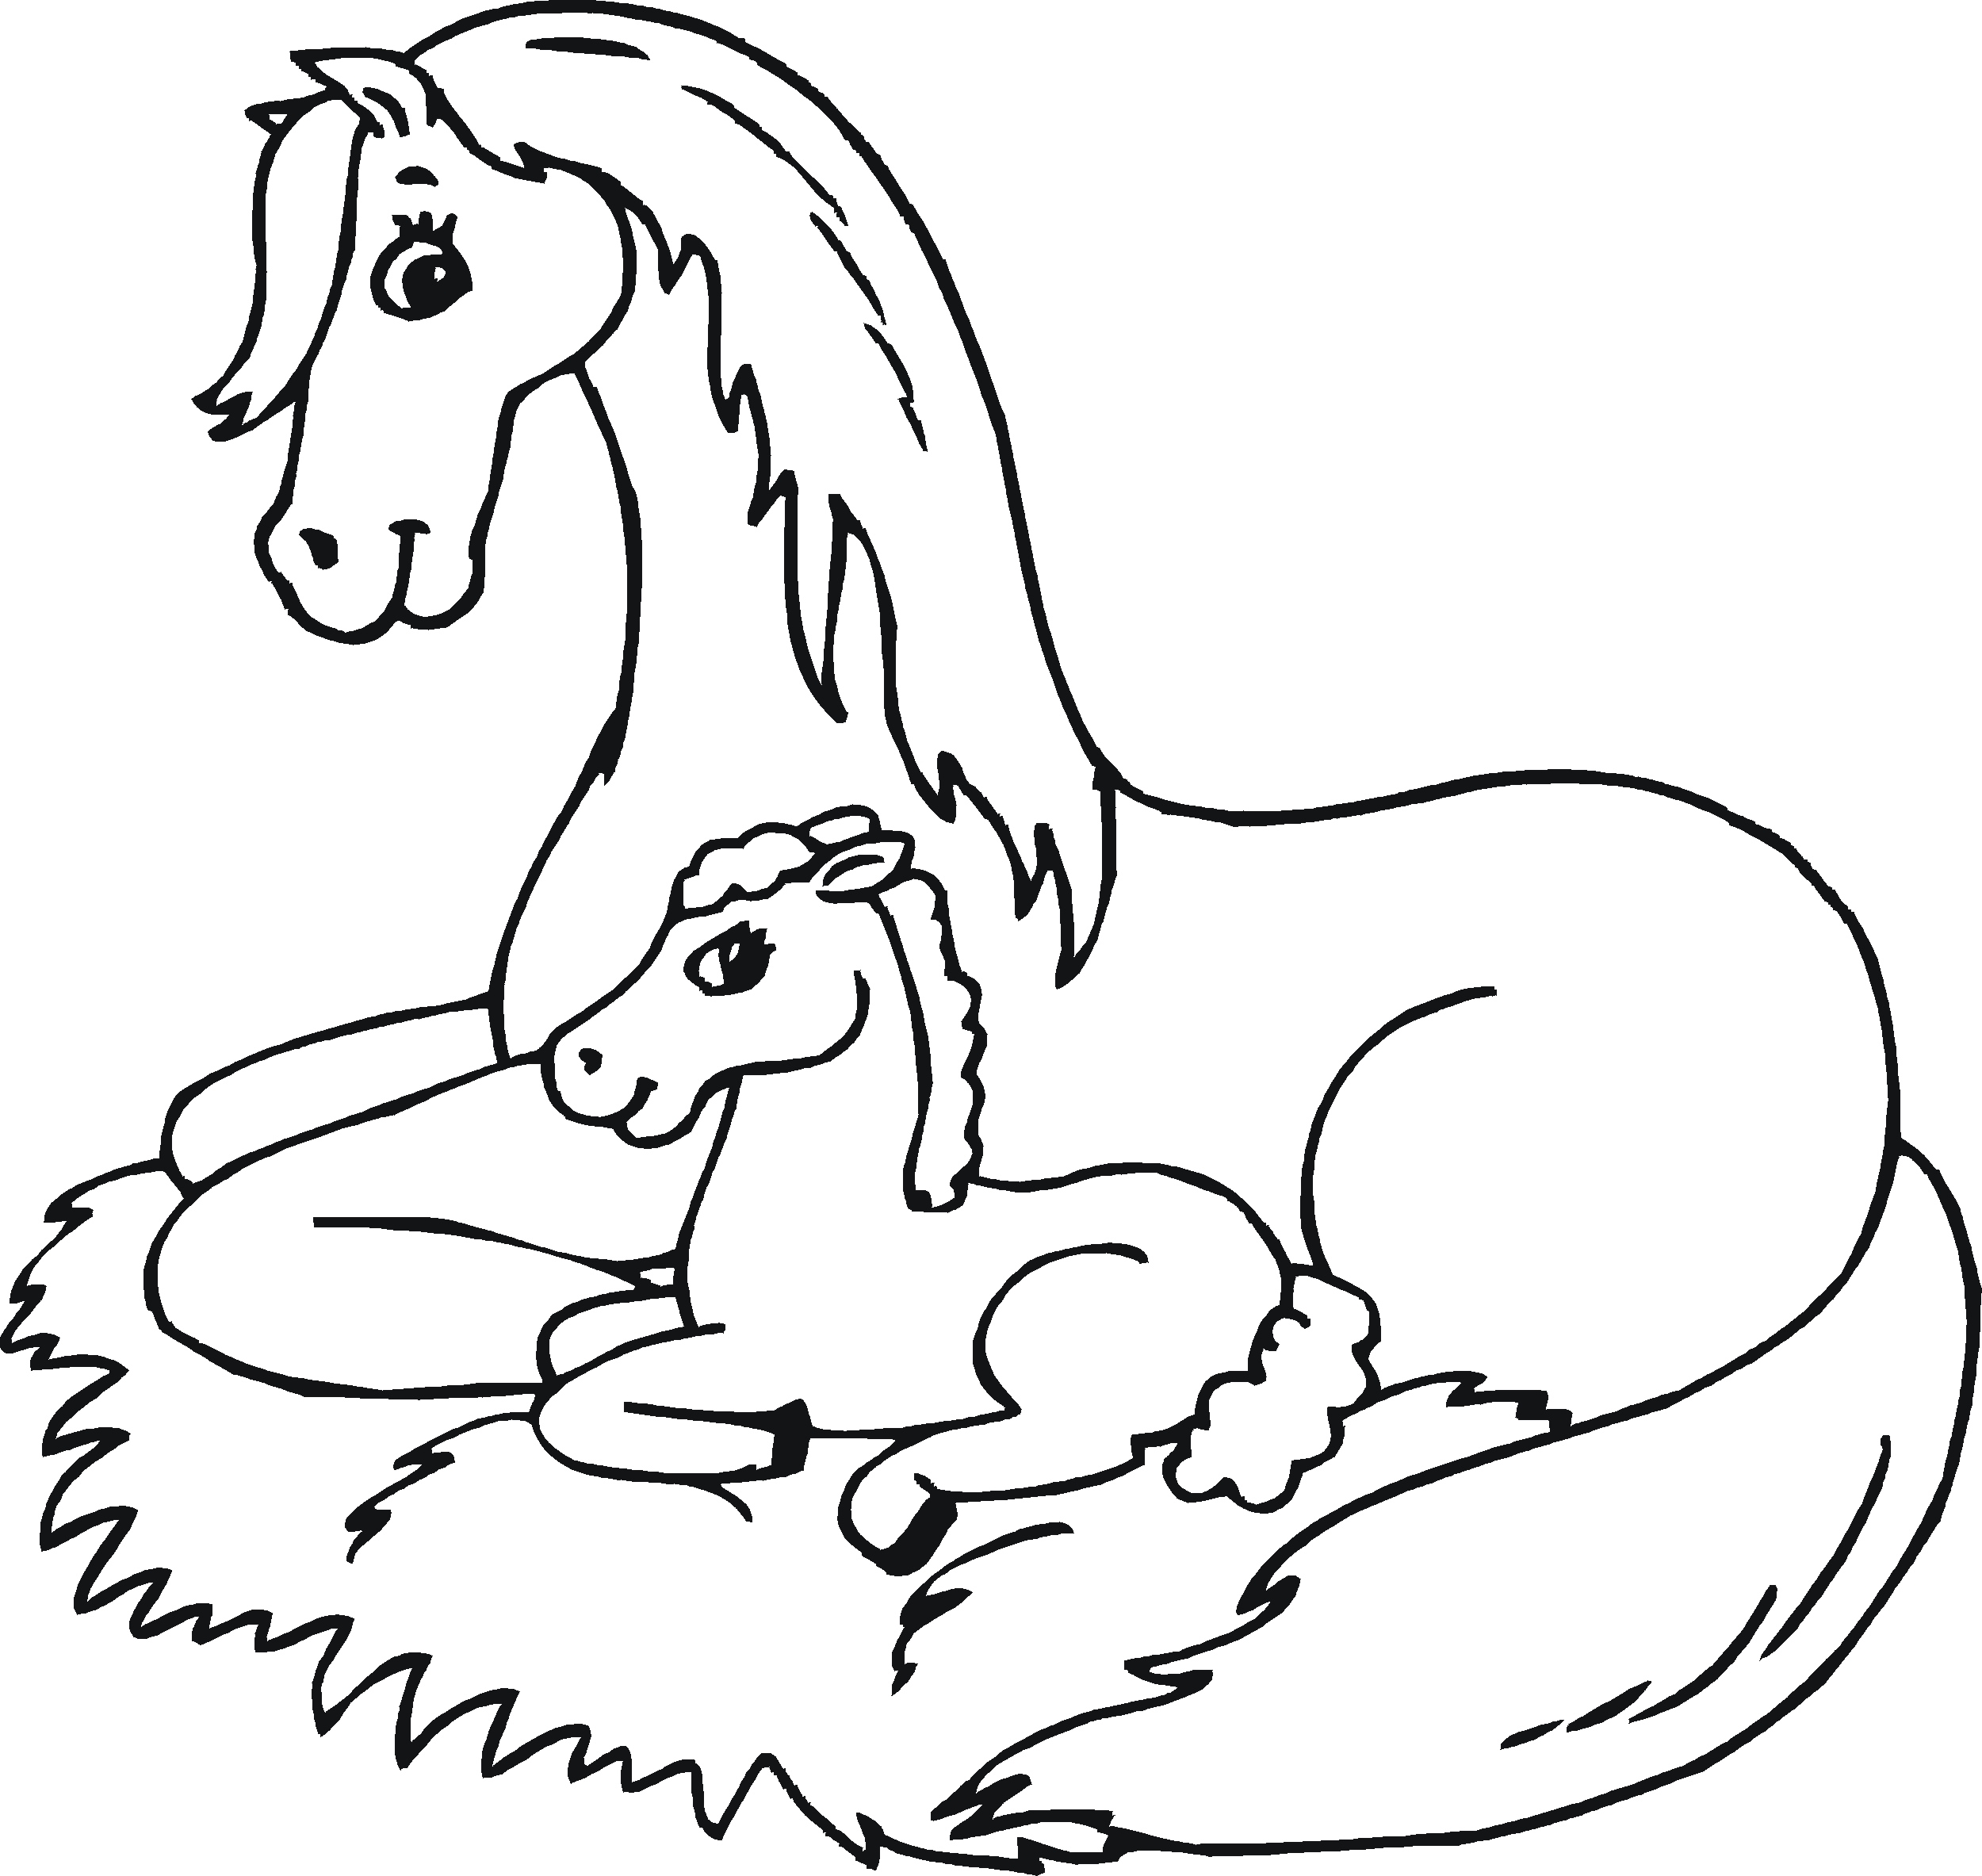 coloring pages of baby horses baby horse coloring pages coloring pages to download and coloring of pages baby horses